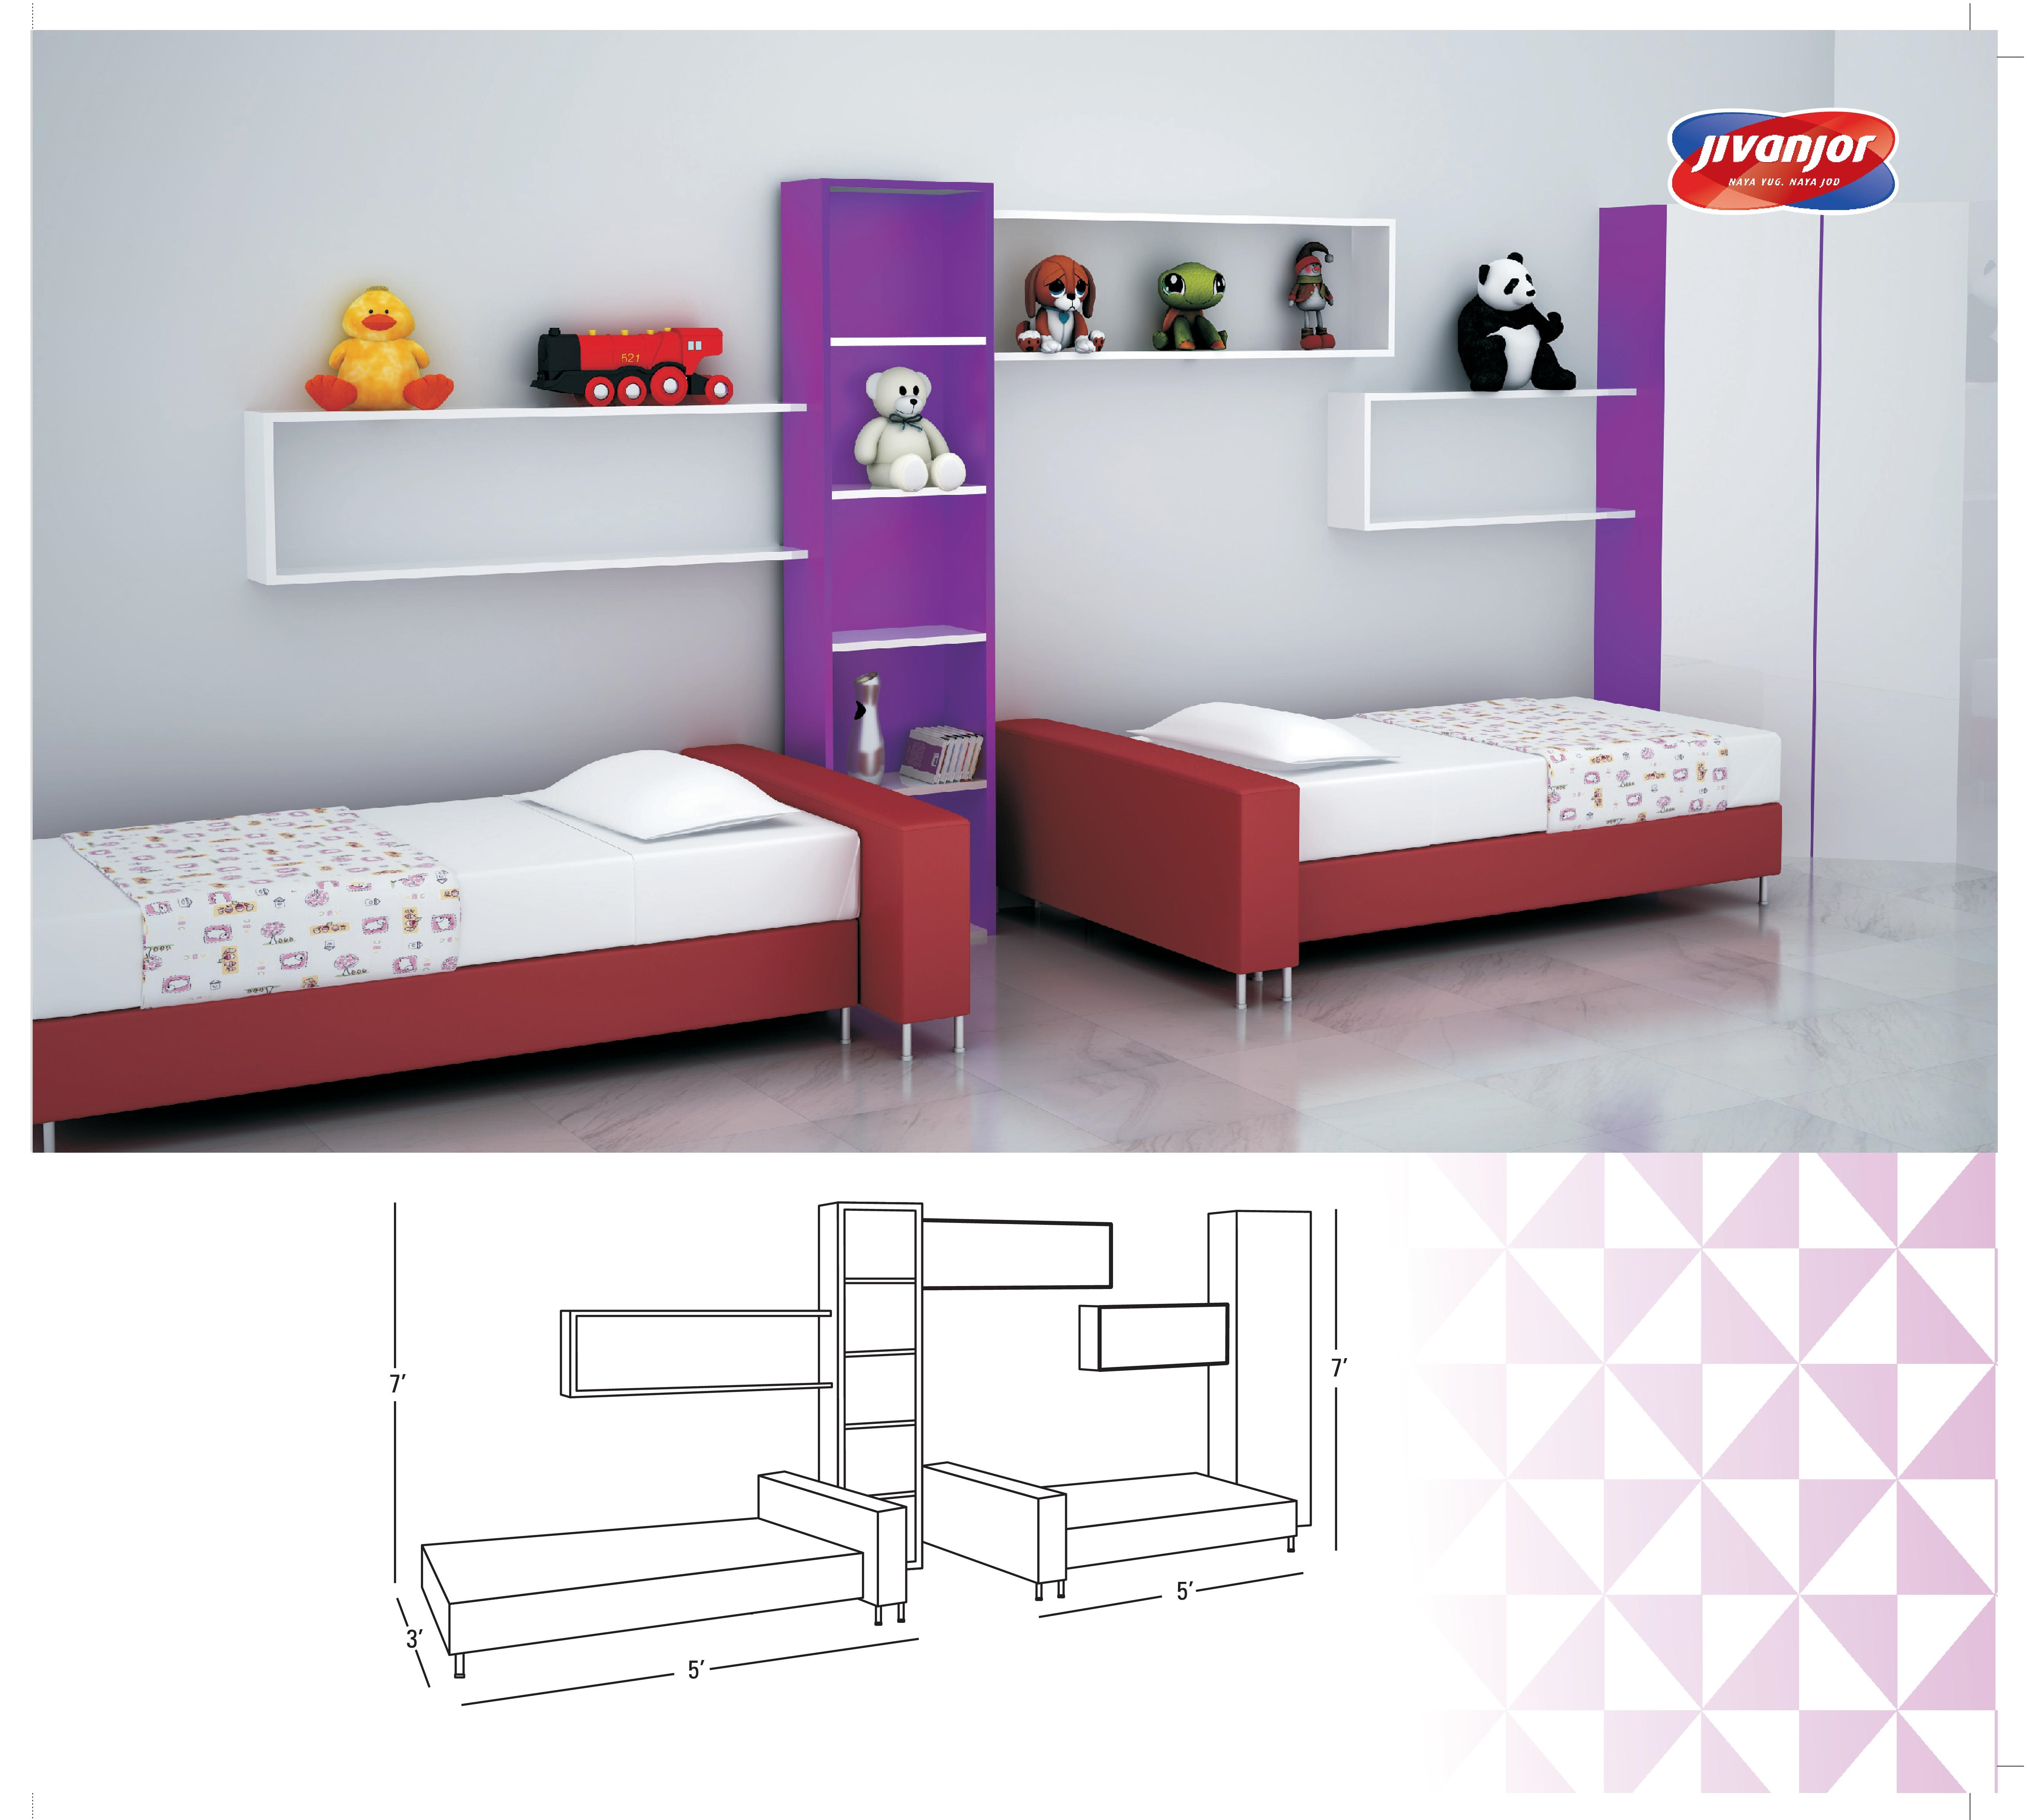 Kids Double Bed Room with Separate Beds